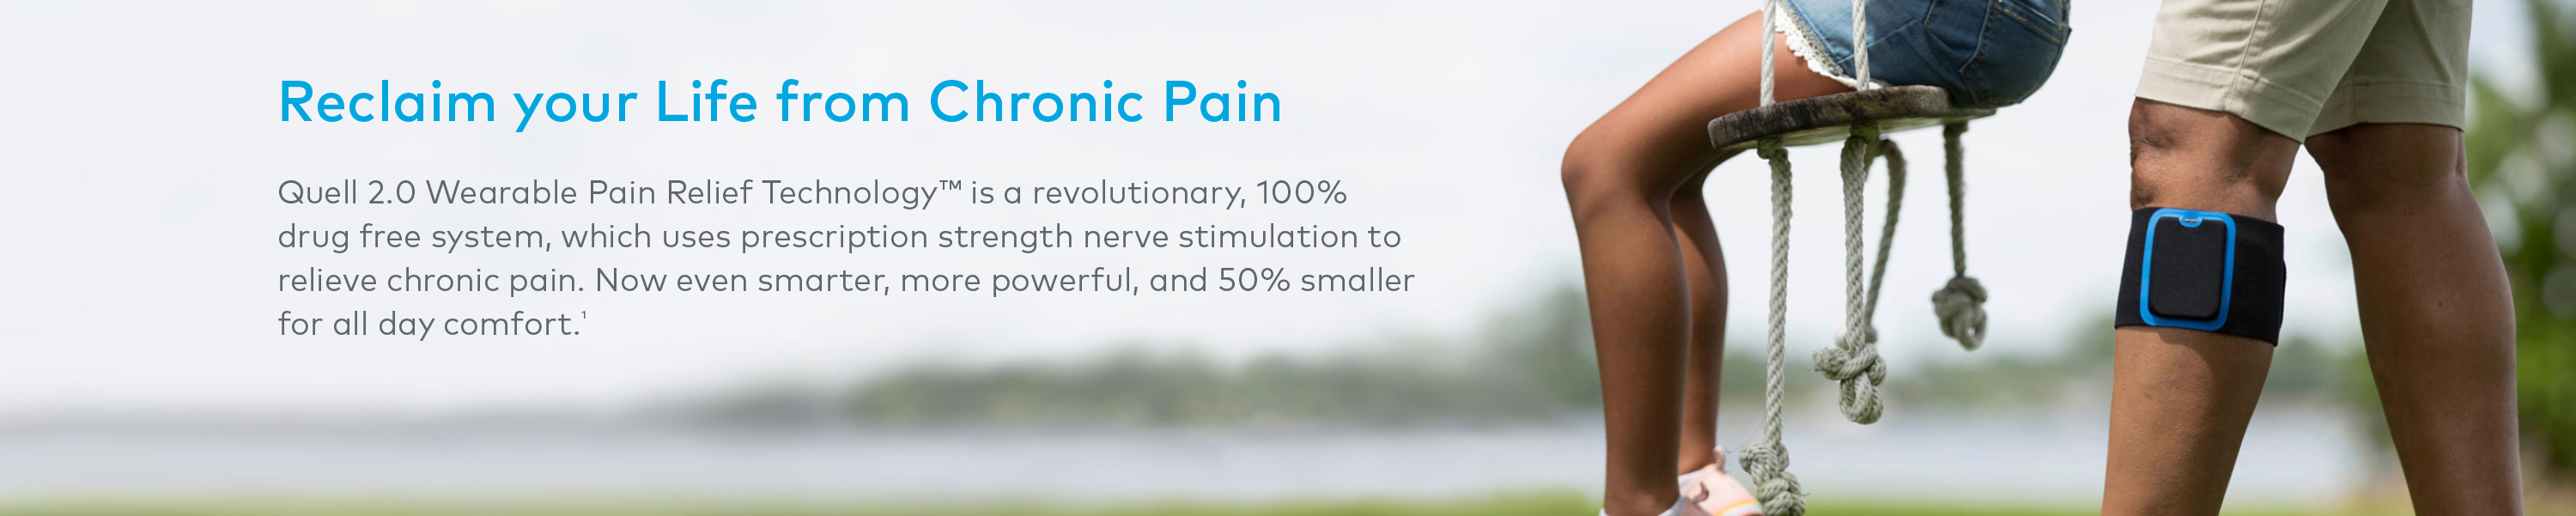 Image result for Quell 2.0 Wearable Pain Relief Technology